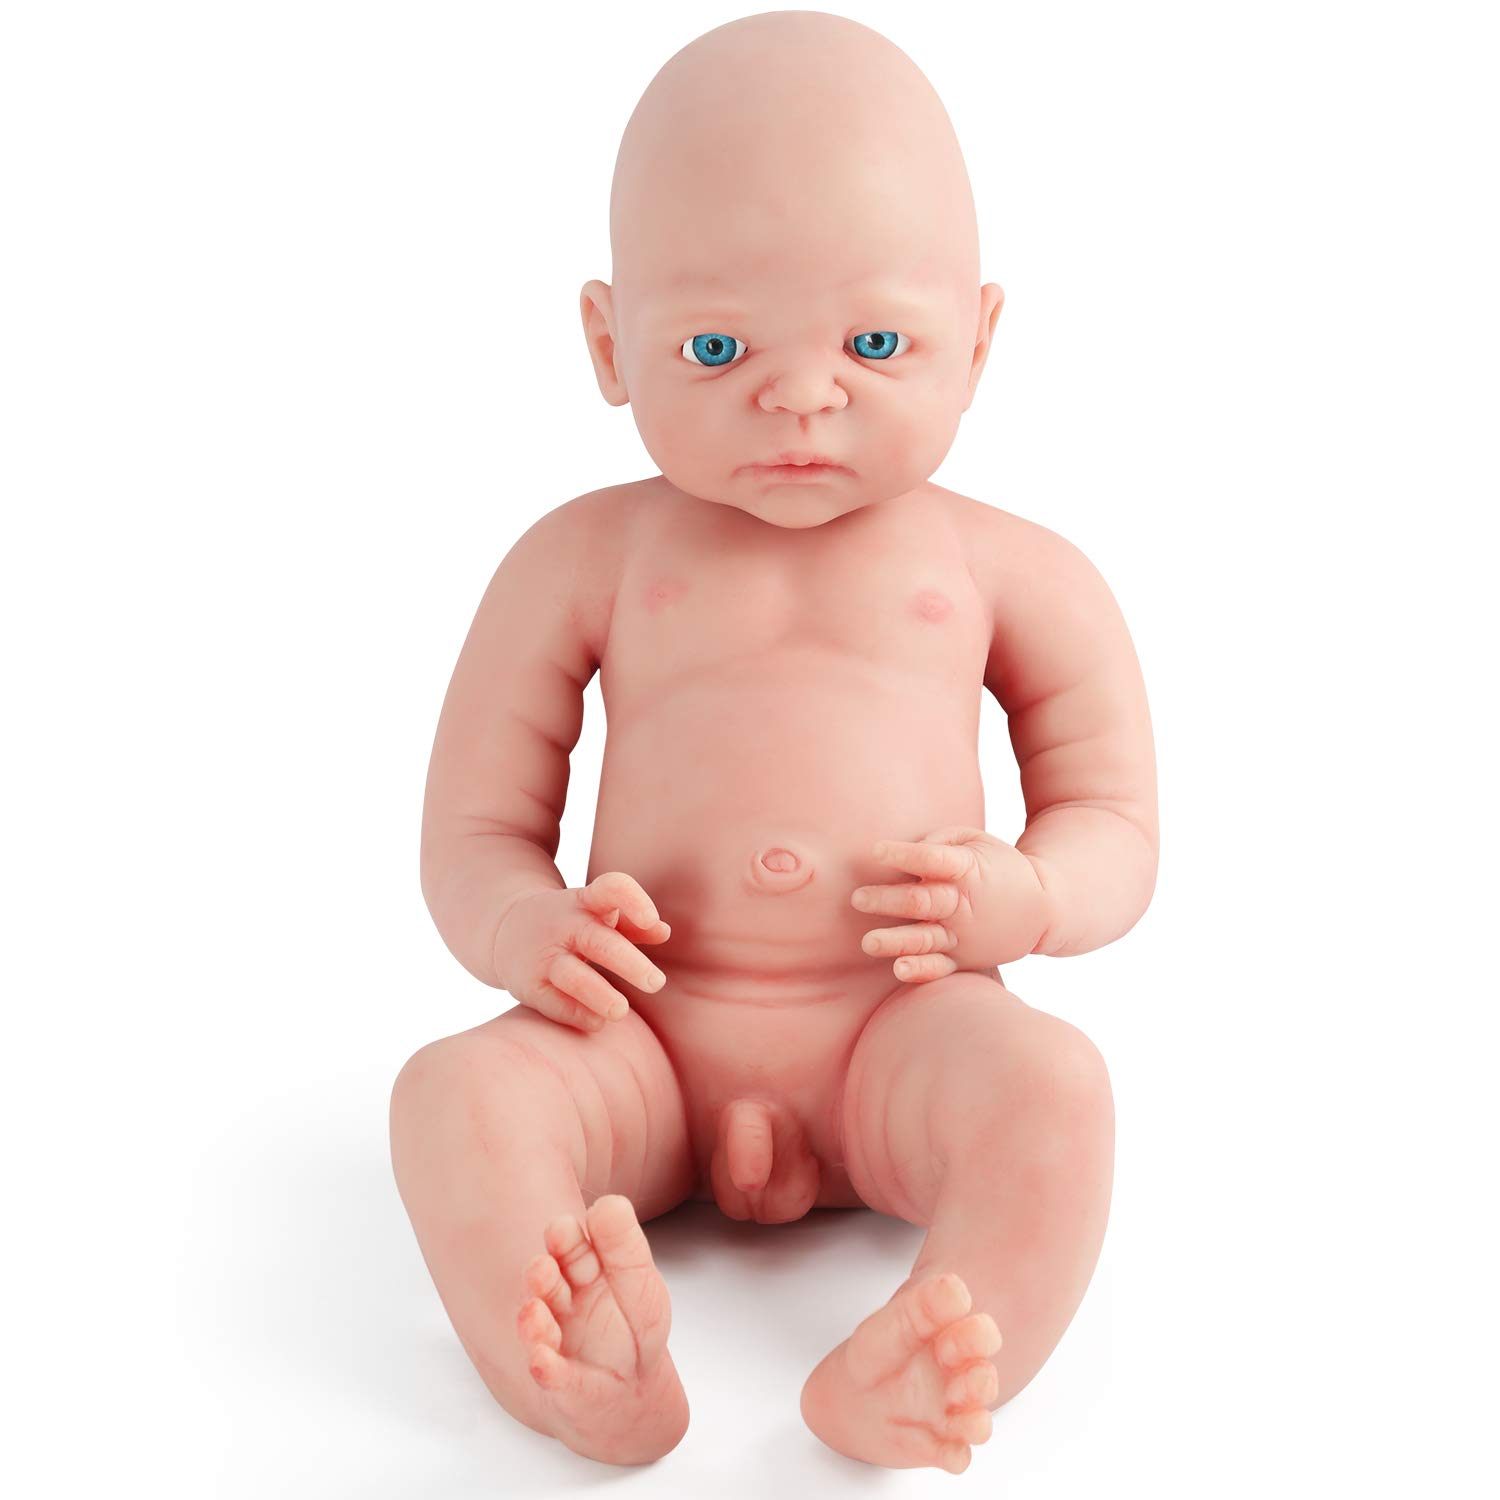 66c1fc76fa0d Vollence 22 inch Realistic Reborn Baby Doll,PVC Free,Solid Platinum Liquid  Full Body Silicone Real Baby Dolls,Lifelike Soft Handmade Silicone Baby doll  ...